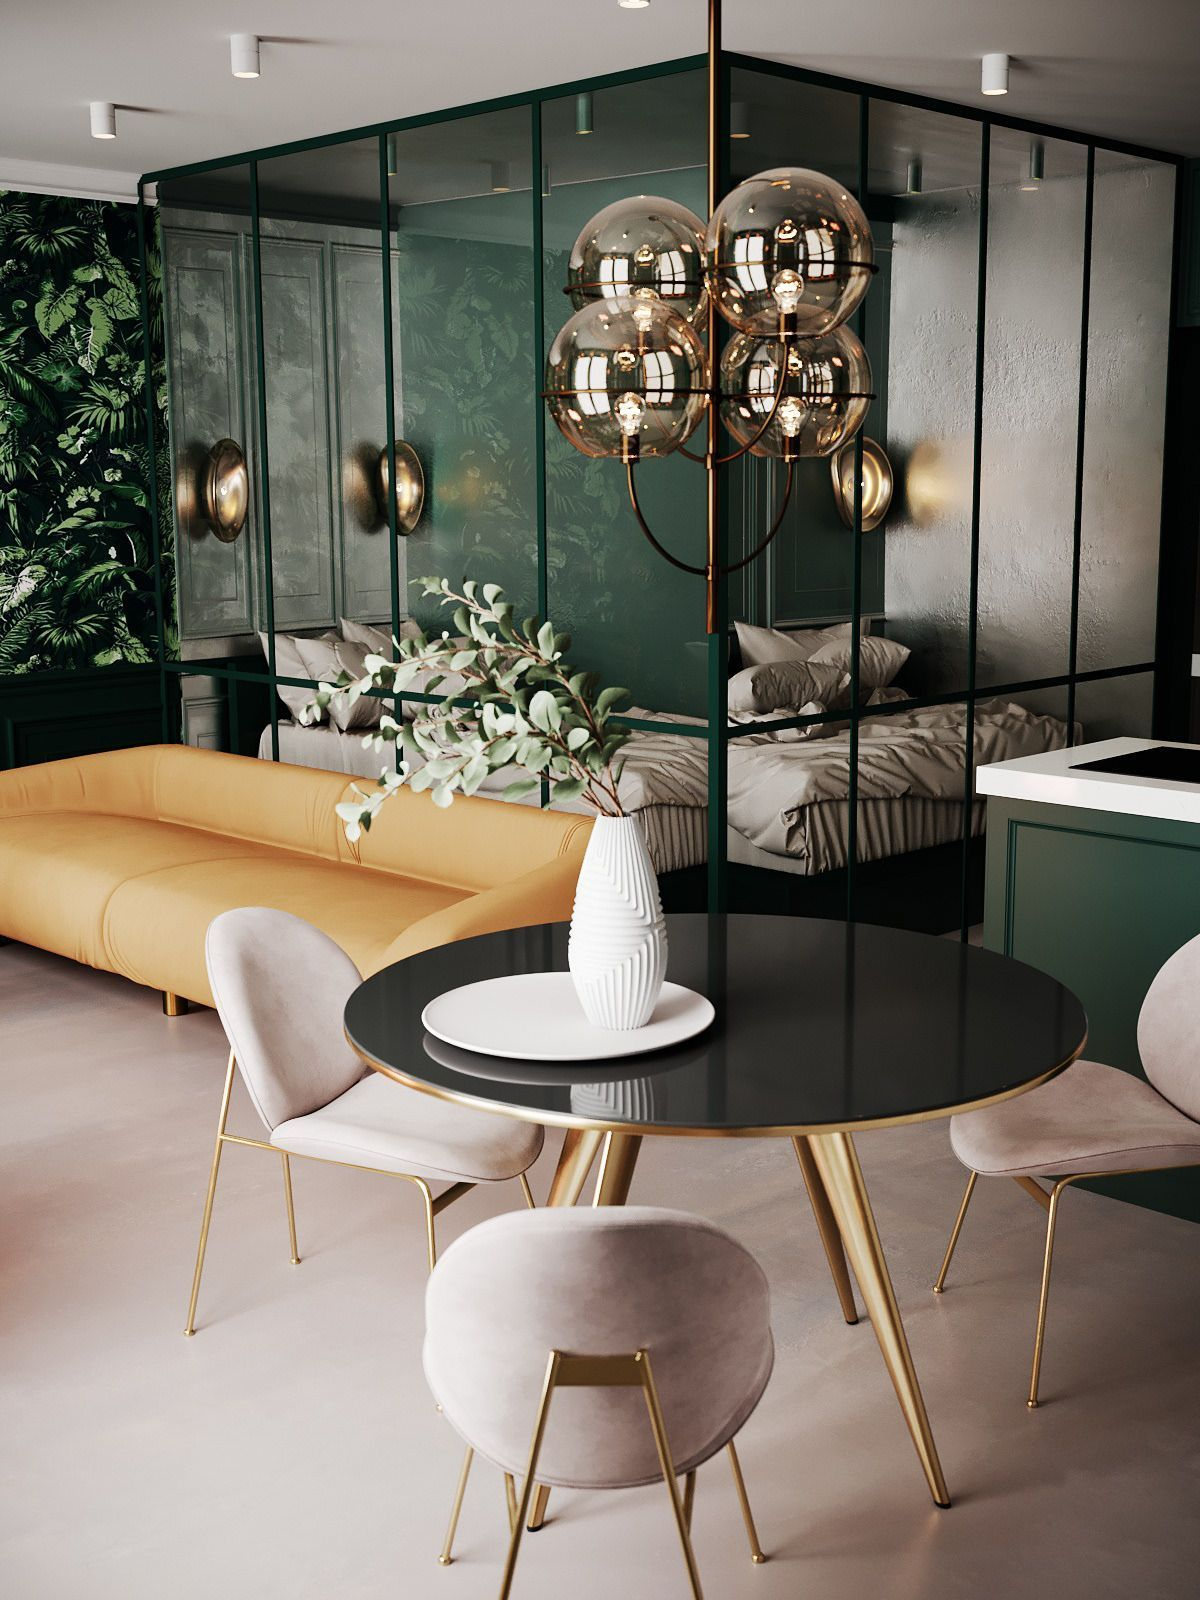 Modern Home Interiors And Design Ideas From The Best In Condos Penthouses And Architecture Plus The Fines Modern Houses Interior Interior Deco House Interior